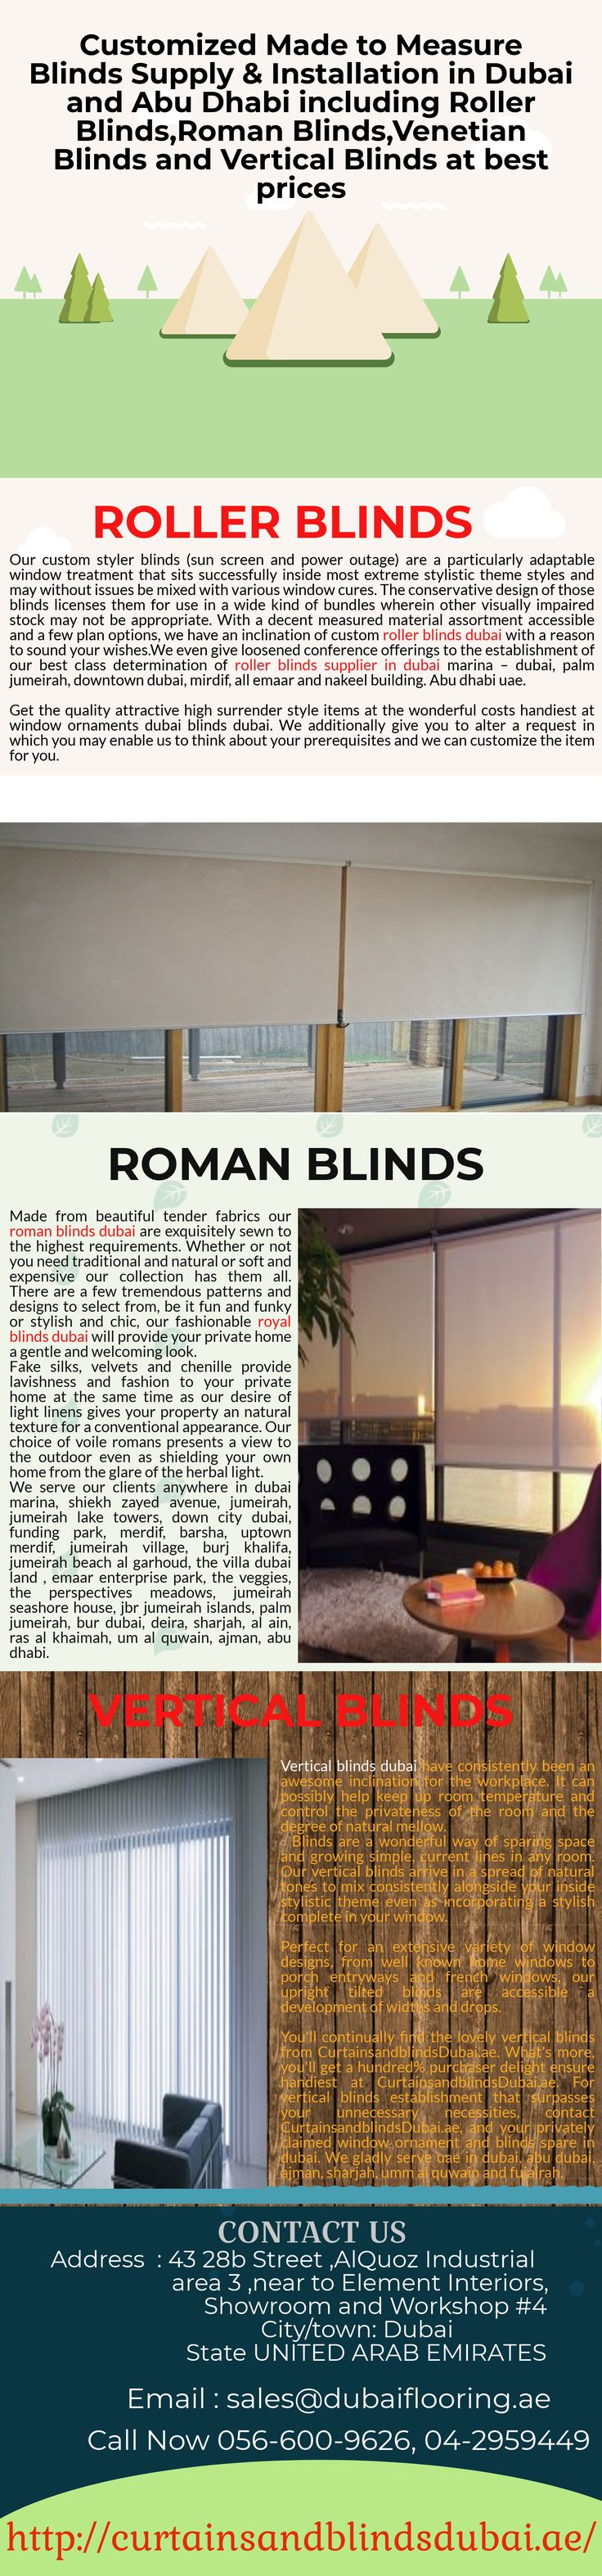 Best 25+ Best blinds ideas on Pinterest | PLL, Funny walk and Haha ...